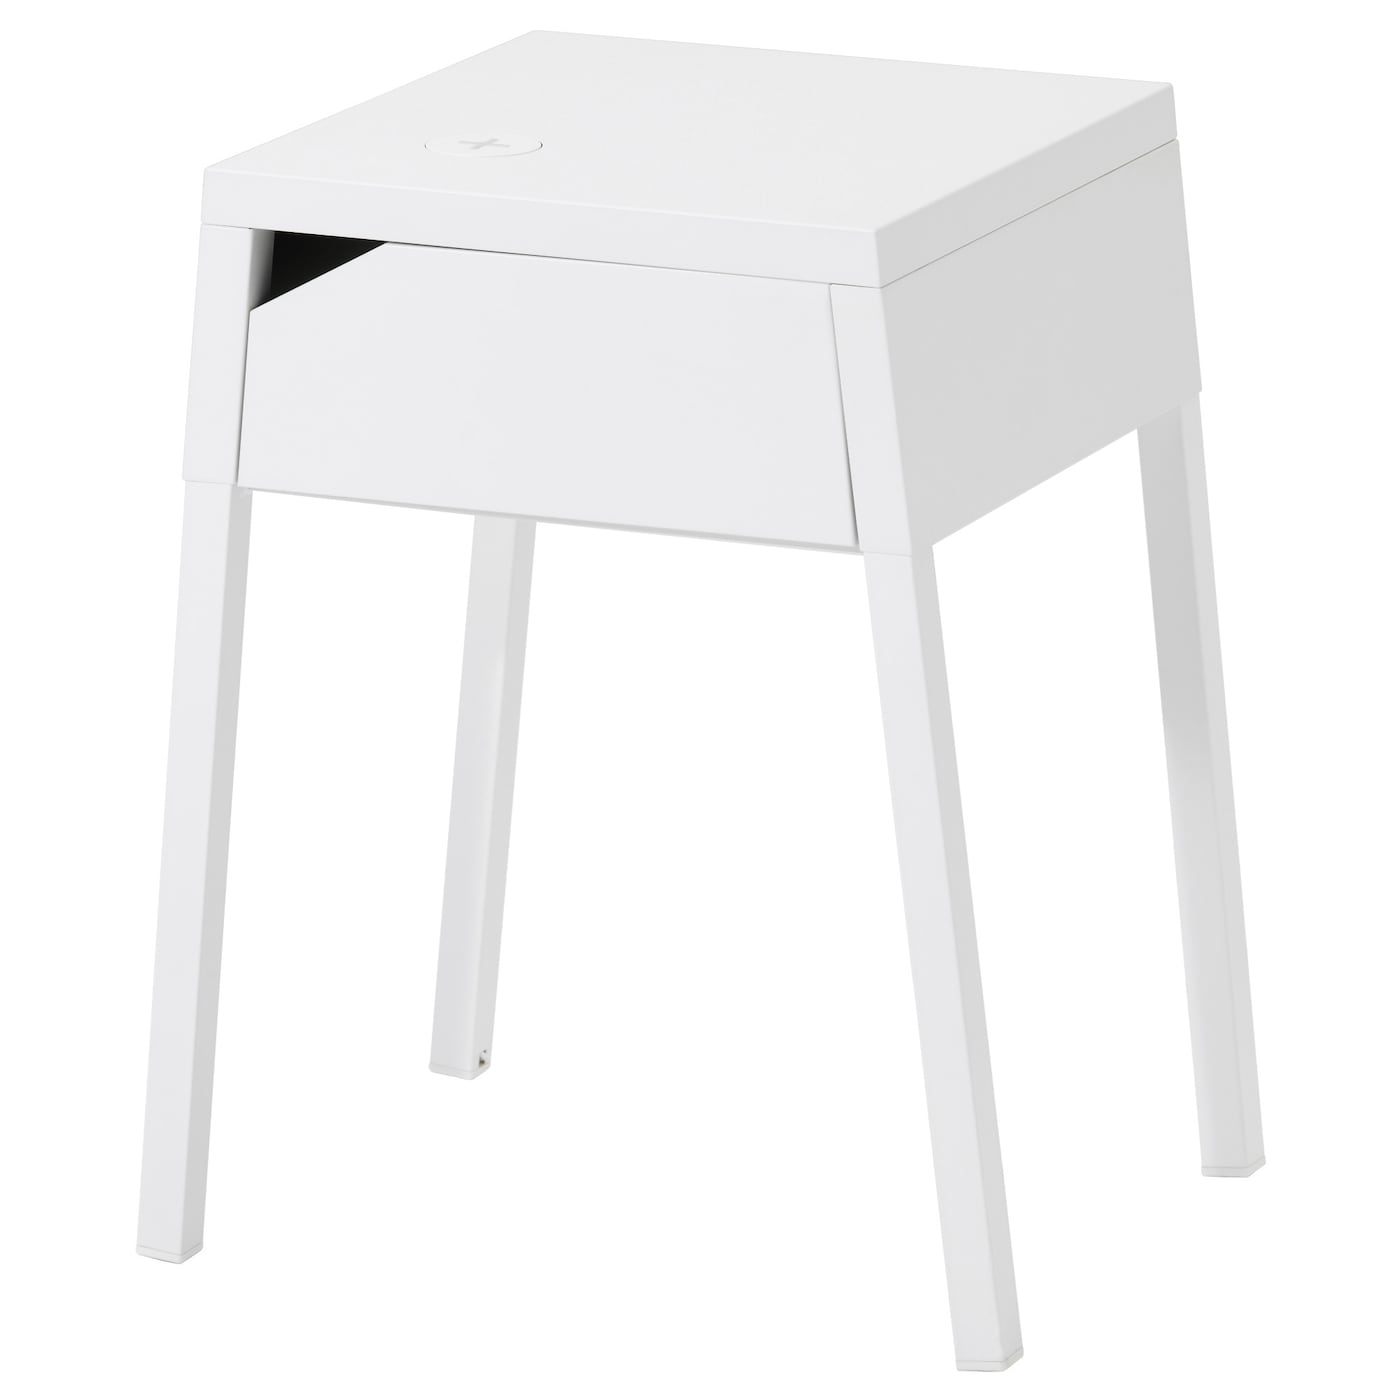 IKEA SELJE bedside table with hole for charger